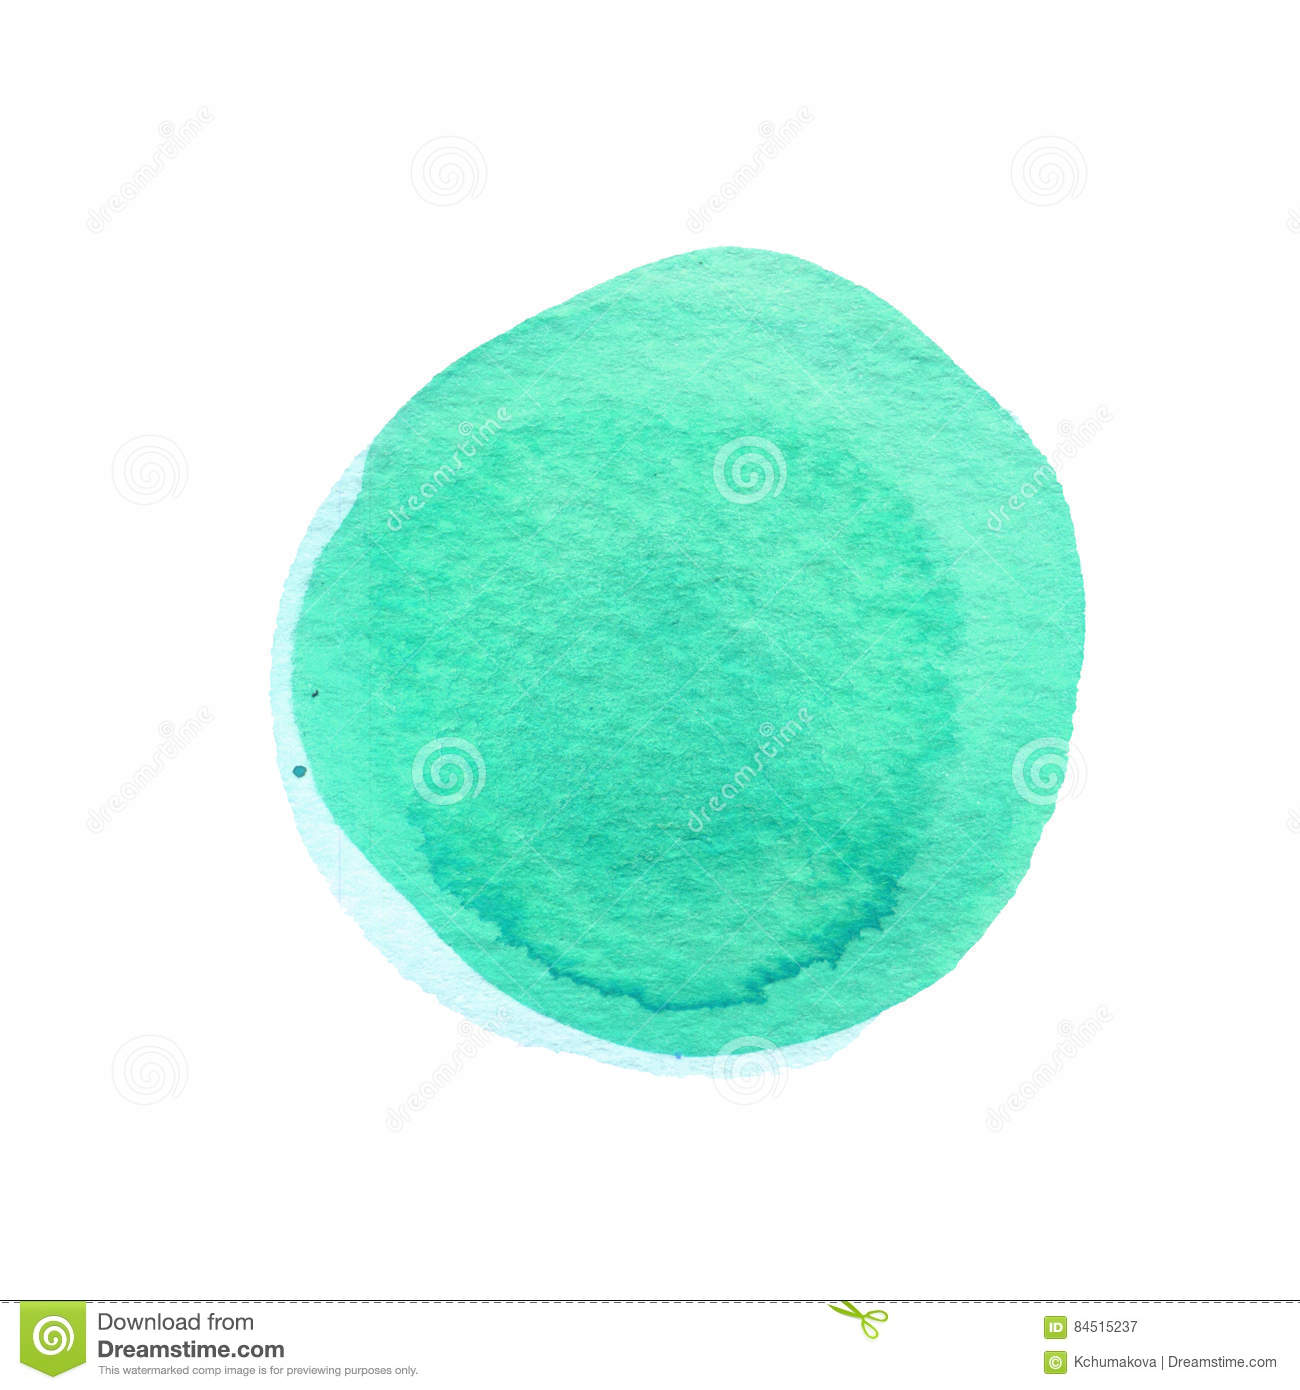 Simple Wallpaper Marble Mint Green - mint-green-watercolor-circle-isolated-white-abstract-round-background-watercolour-stains-texture-space-your-own-text-84515237  Collection_43727.jpg